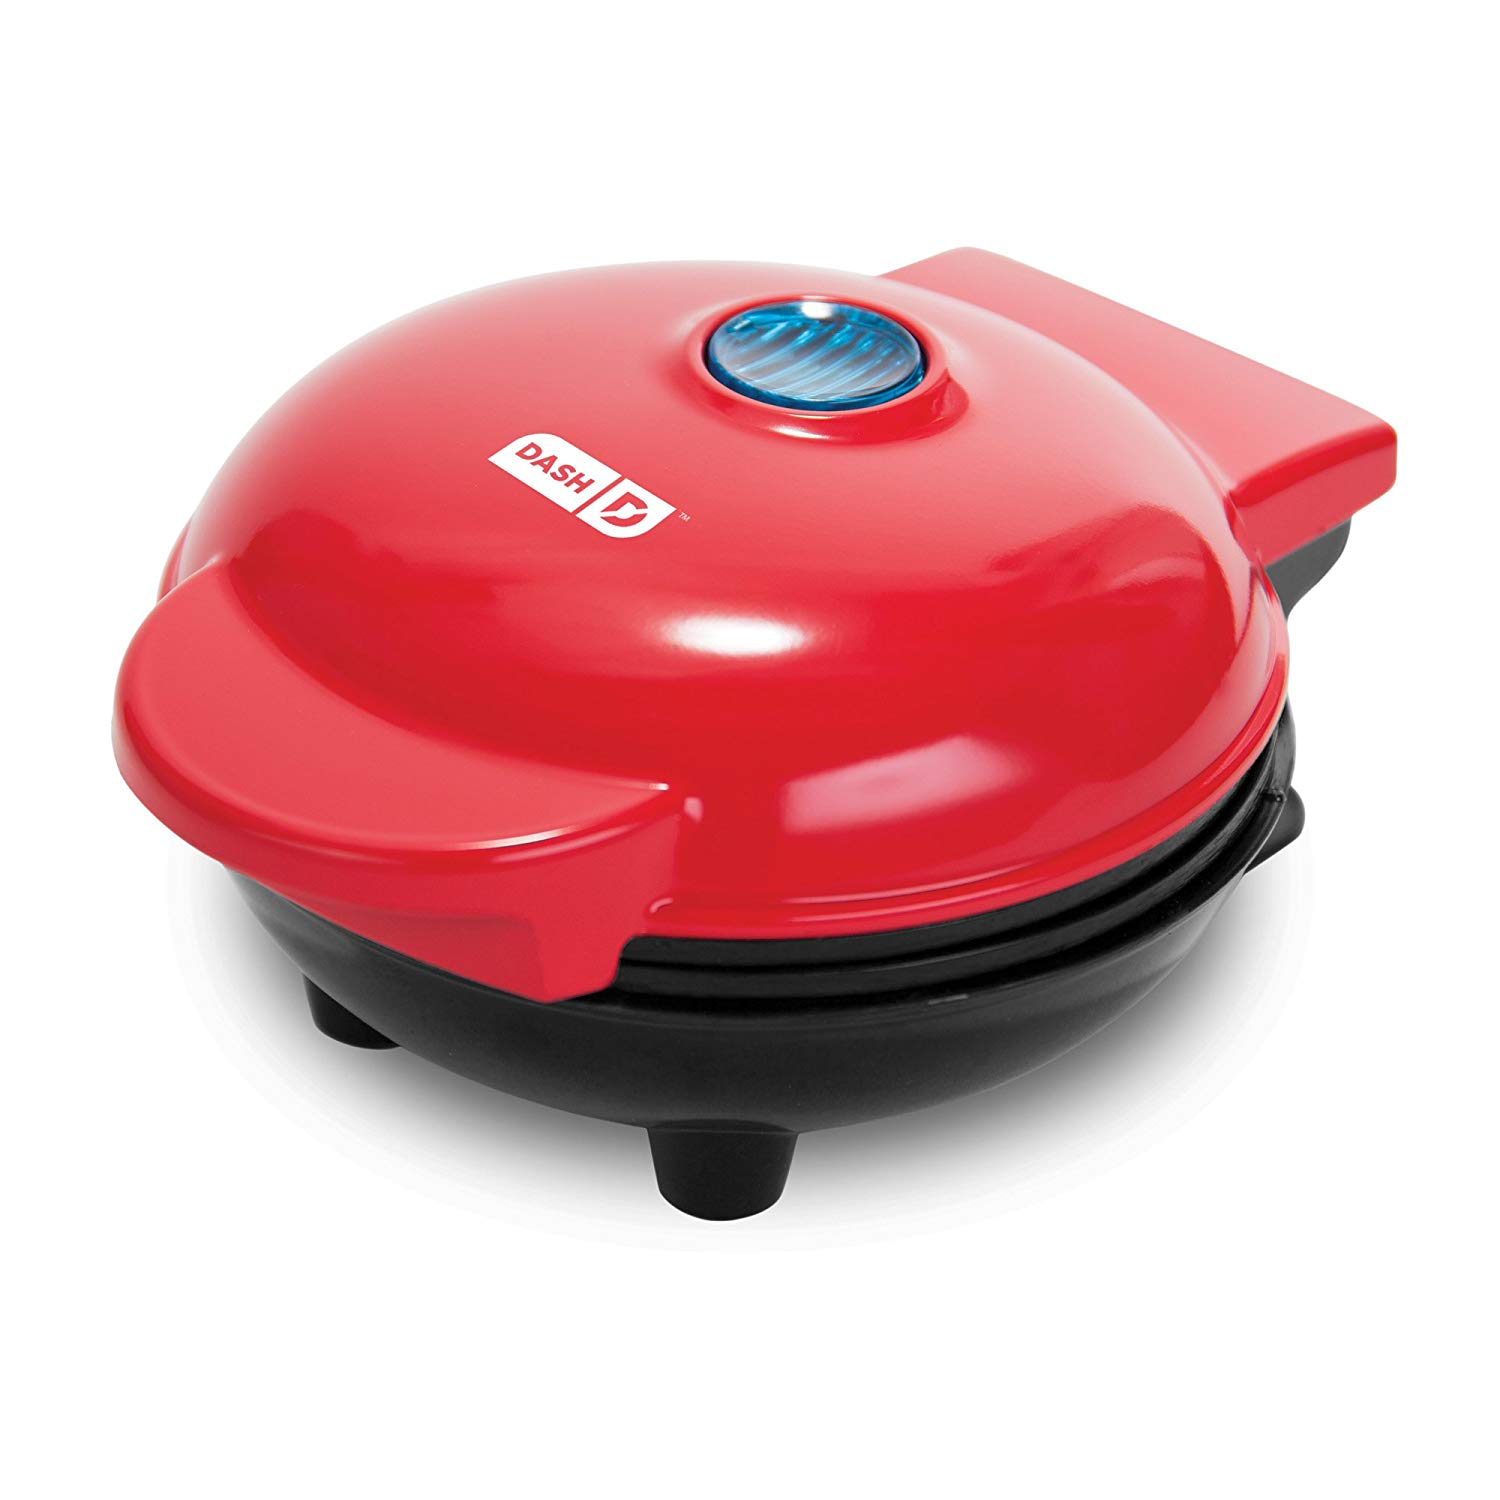 Making chaffles: The dash mini waffle maker is affordable at under $15 in lots of great colors